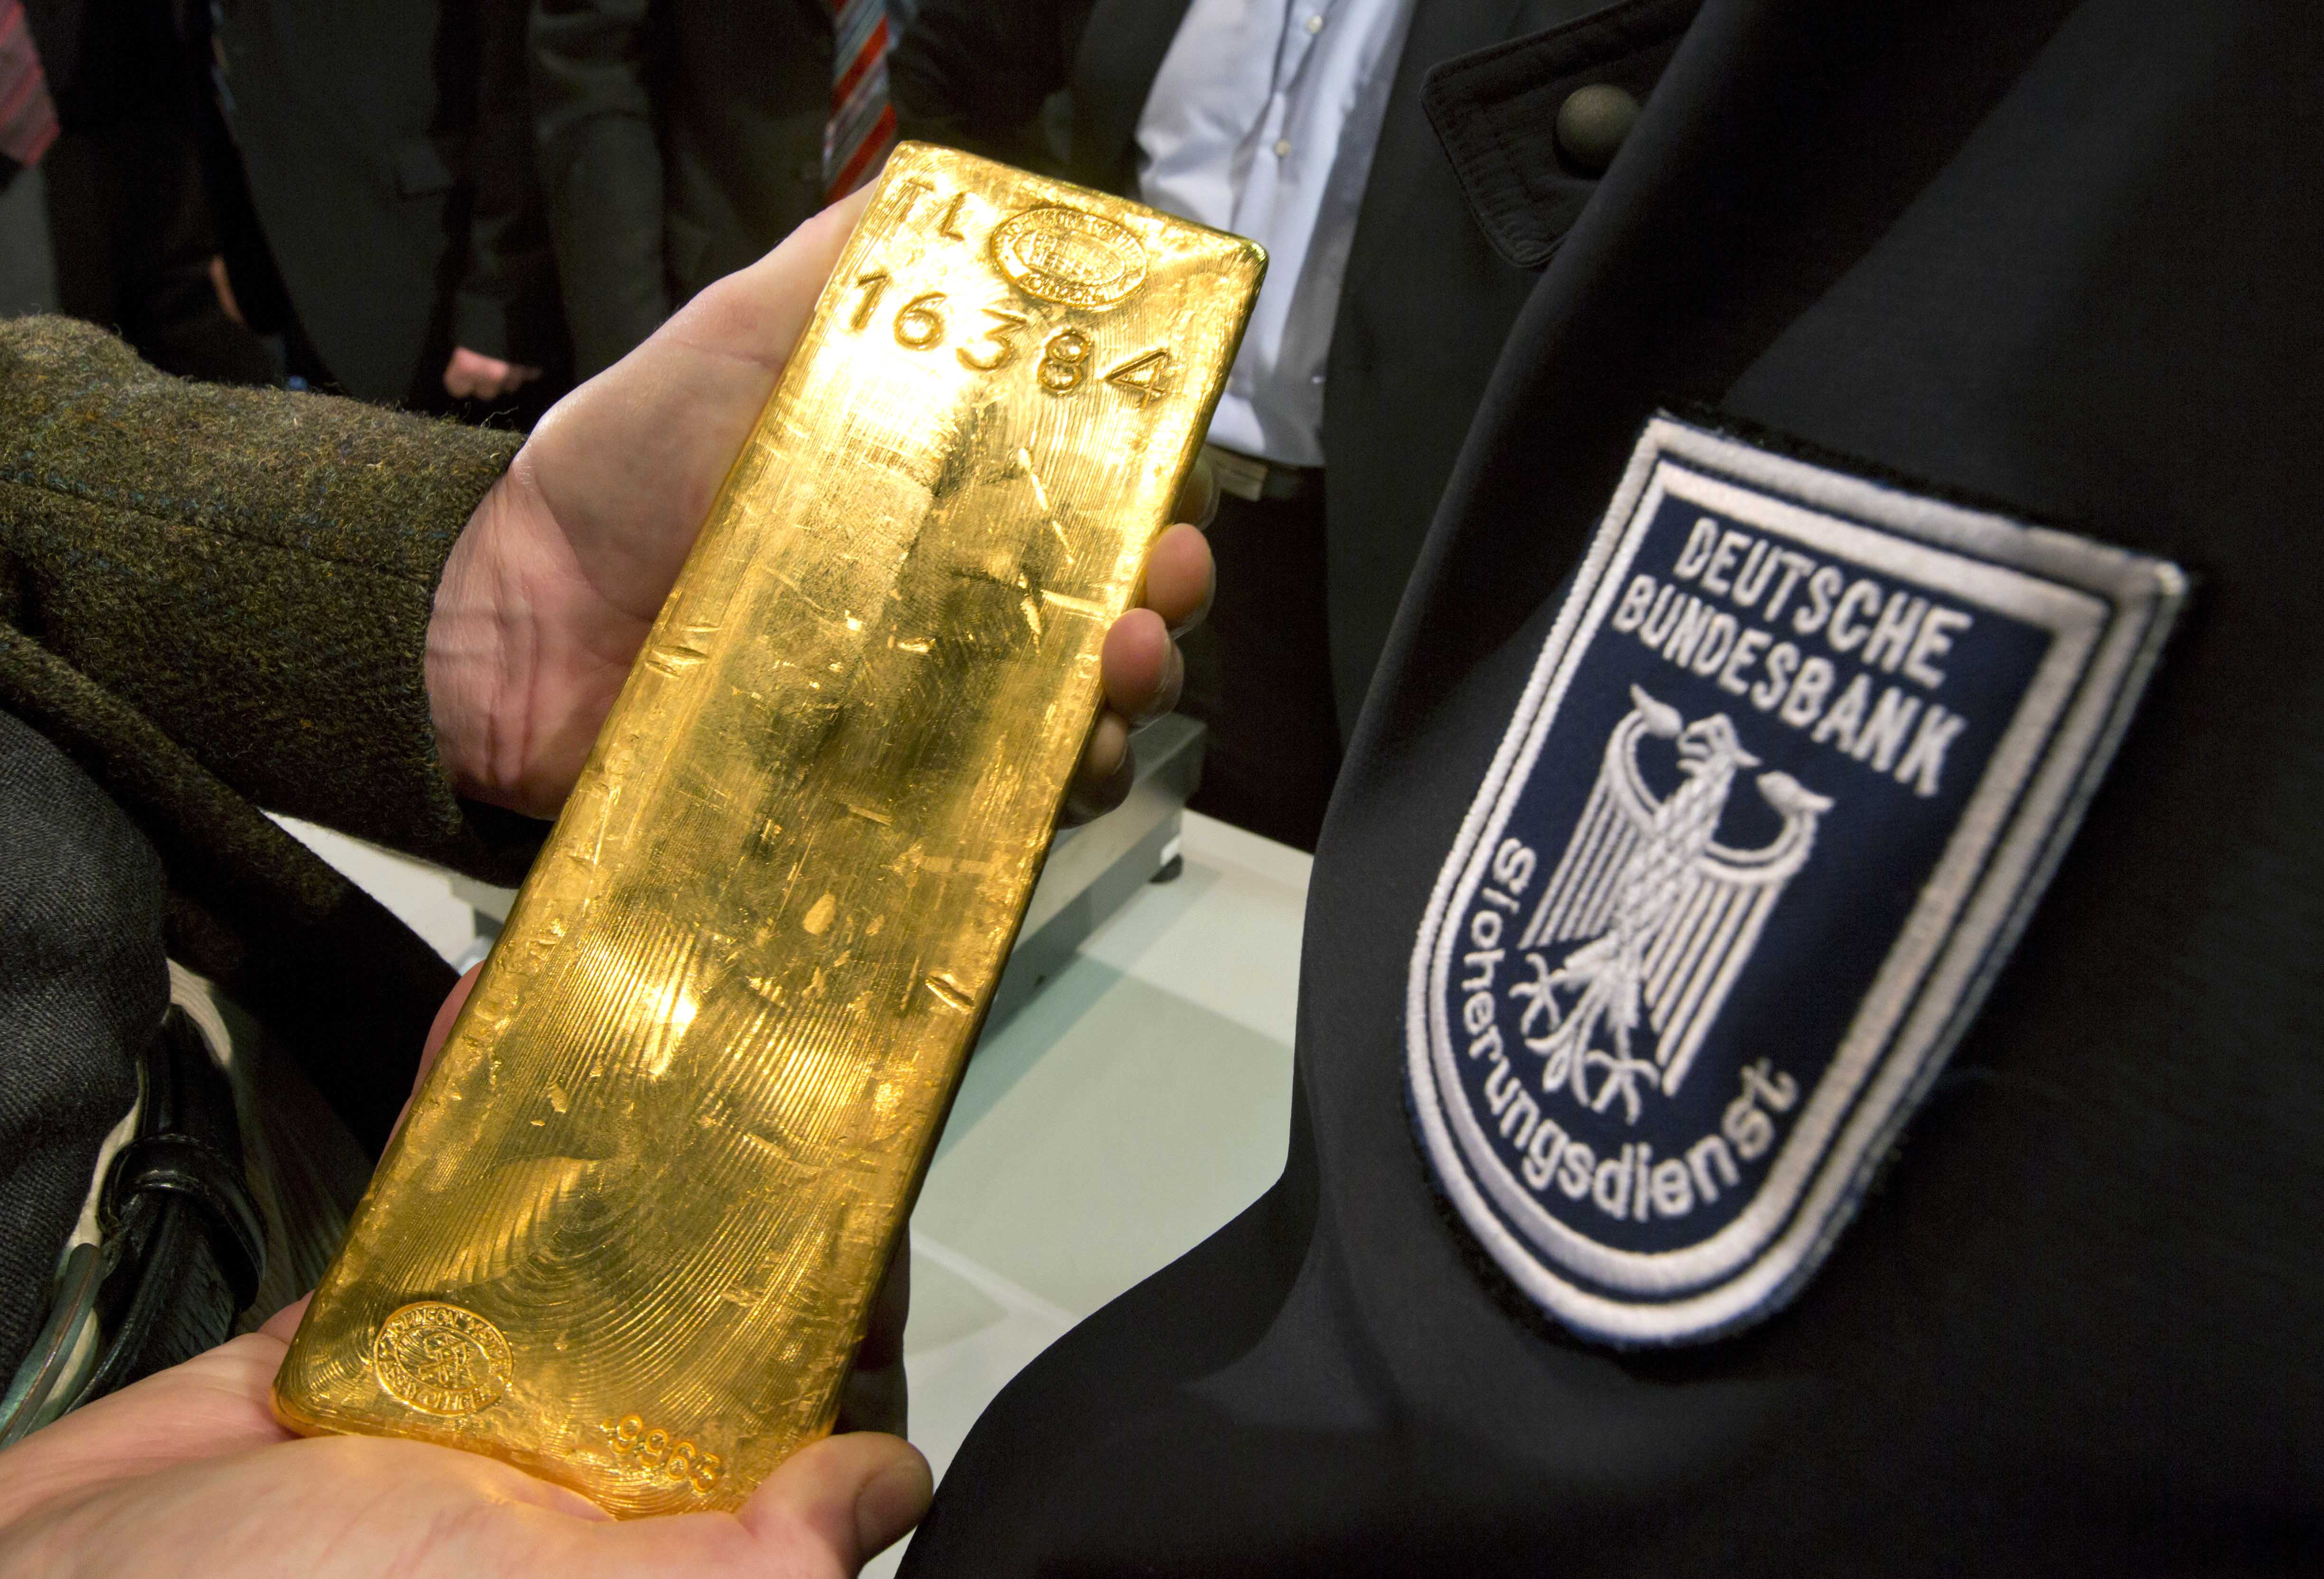 A journalist holds a gold ingot next to a security officer of the German Central Bank, right, in Frankfurt, Germany, Wednesday Jan. 16, 2013. Germany's central bank is to bring back home some US $36 billion ( 27 billion euro) worth of gold stored in the United States and France.The Bundesbank said in a statement Wednesday that it will repatriate all 374 tons of gold it had stored in Paris by 2020. An additional 300 tons - equivalent to 8 percent of the Bundesbank's total reserves worth about $183 billion _ will also be shipped from New York to Frankfurt. Frankfurt will hold half of Germany's 3,400 tons of gold by 2020, with New York retaining 37 percent and London storing 13 percent. The move follows criticism from Germany's independent Federal Auditors' Office last year bemoaning the central bank's oversight of gold reserves abroad. (AP Photo/dpa/ Frank Rumpenhorst)